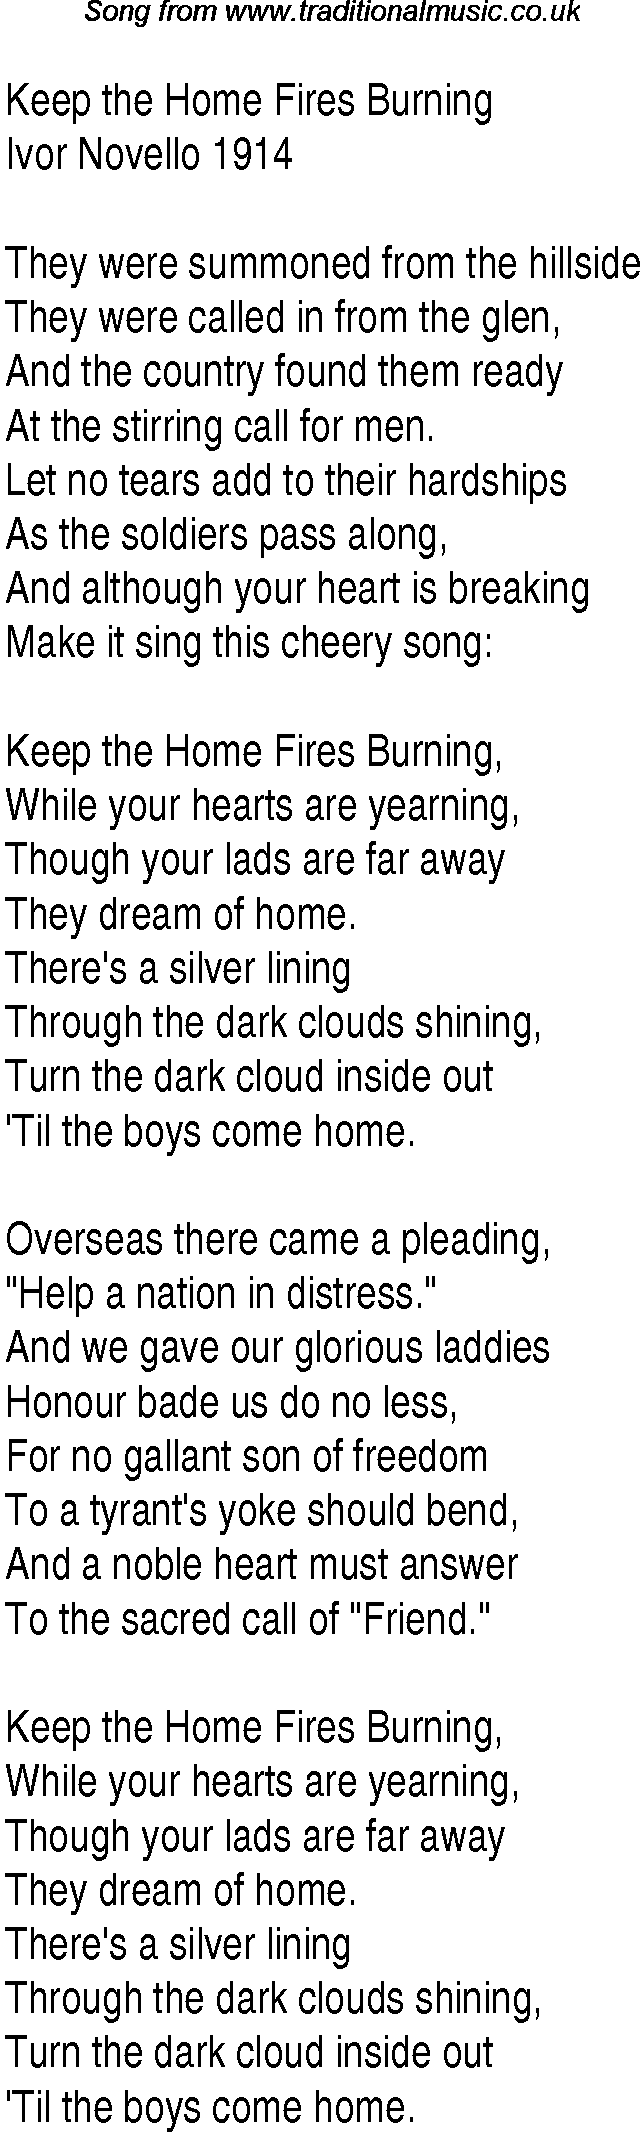 Lyrics containing the term: 1940s